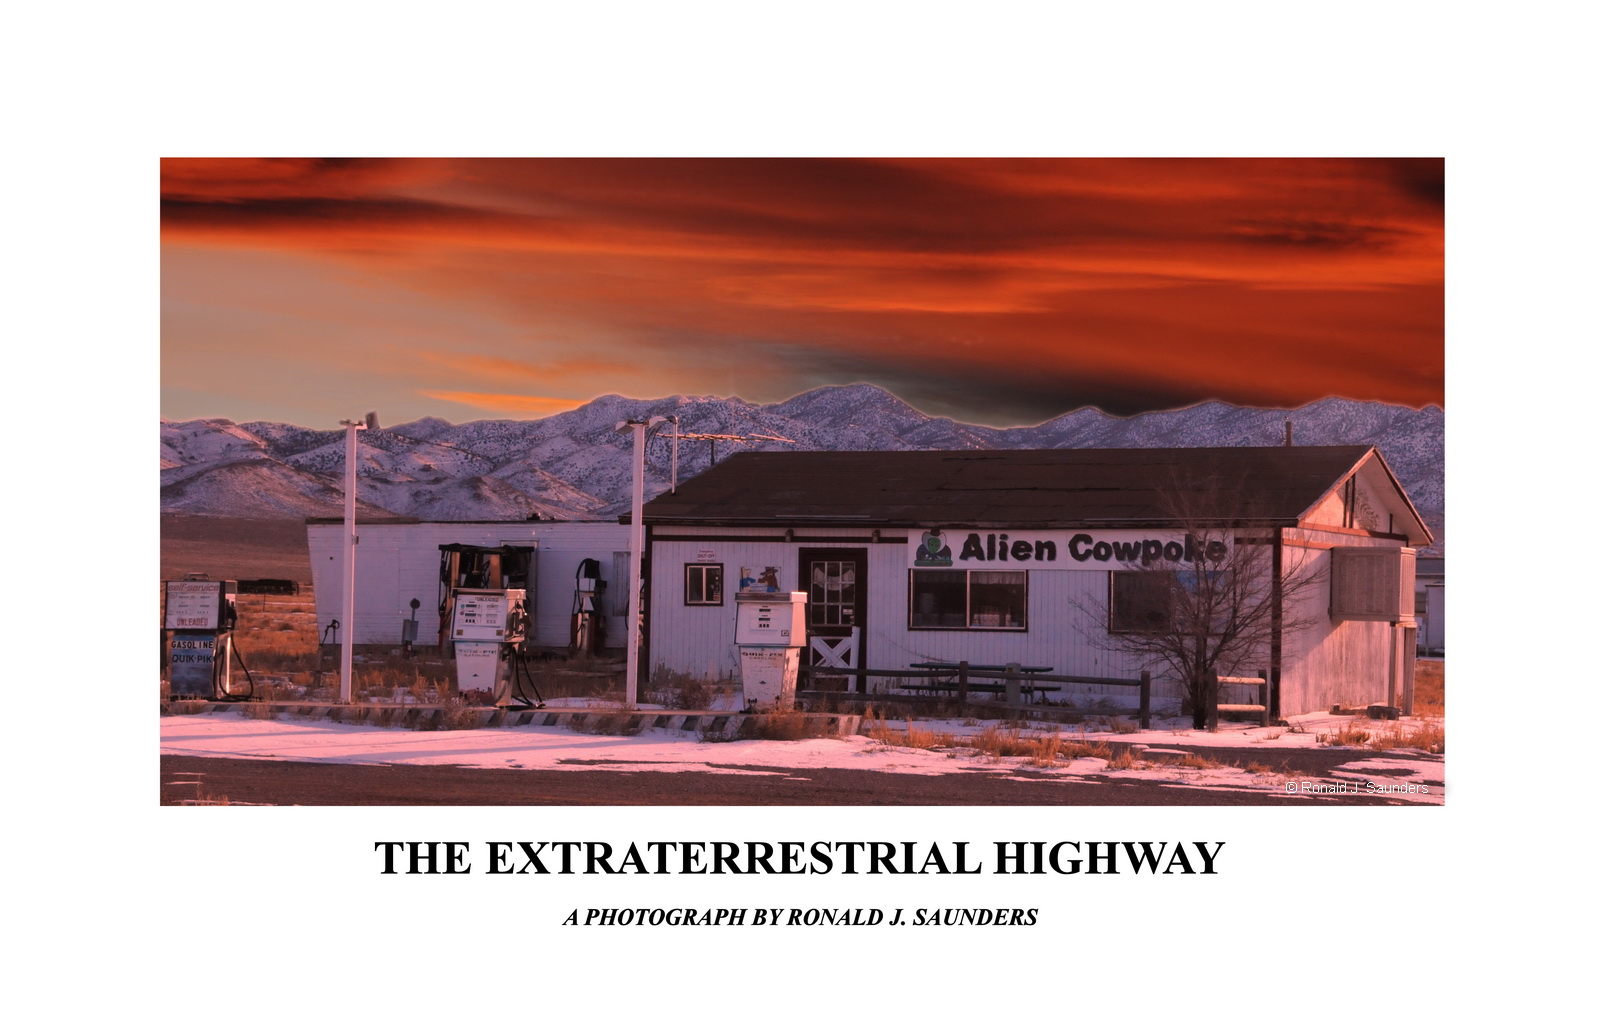 poster, nevada, rachel, UFO,  Extraterrestrial, Highway, landscape, photo